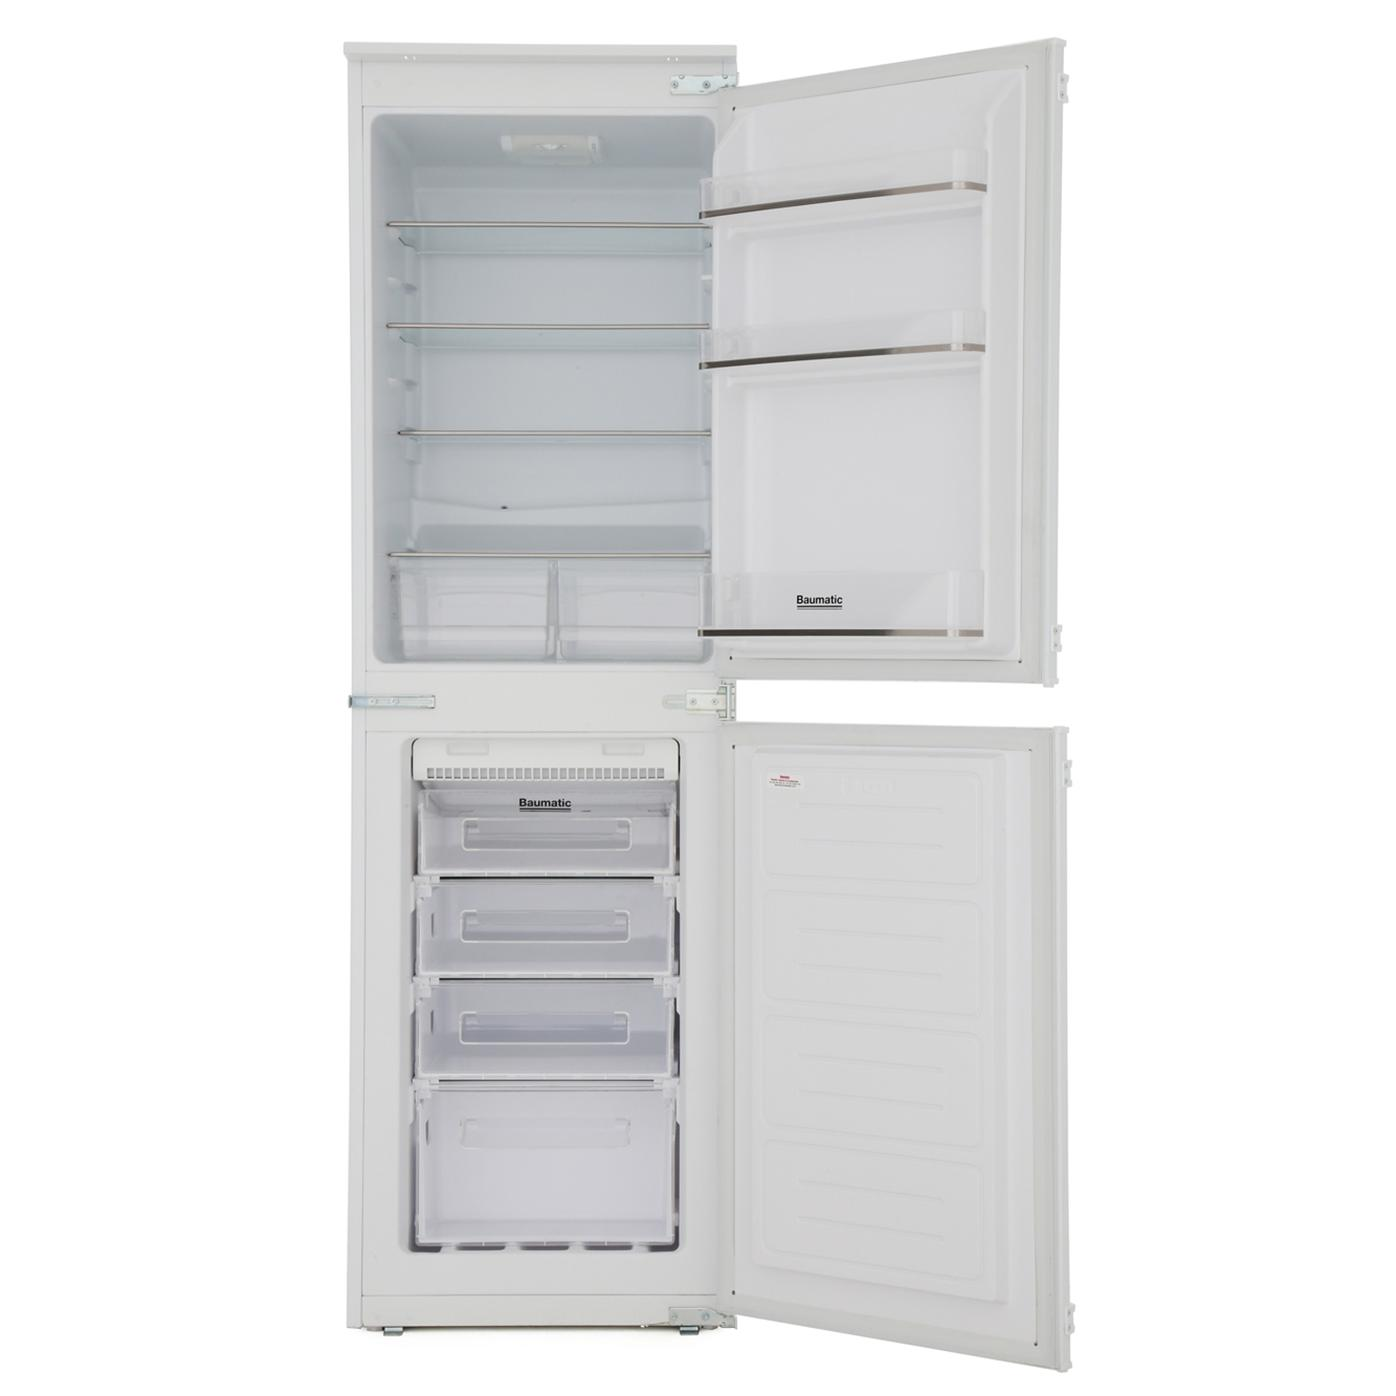 Buy Baumatic Brcif3050 E Integrated Fridge Freezer